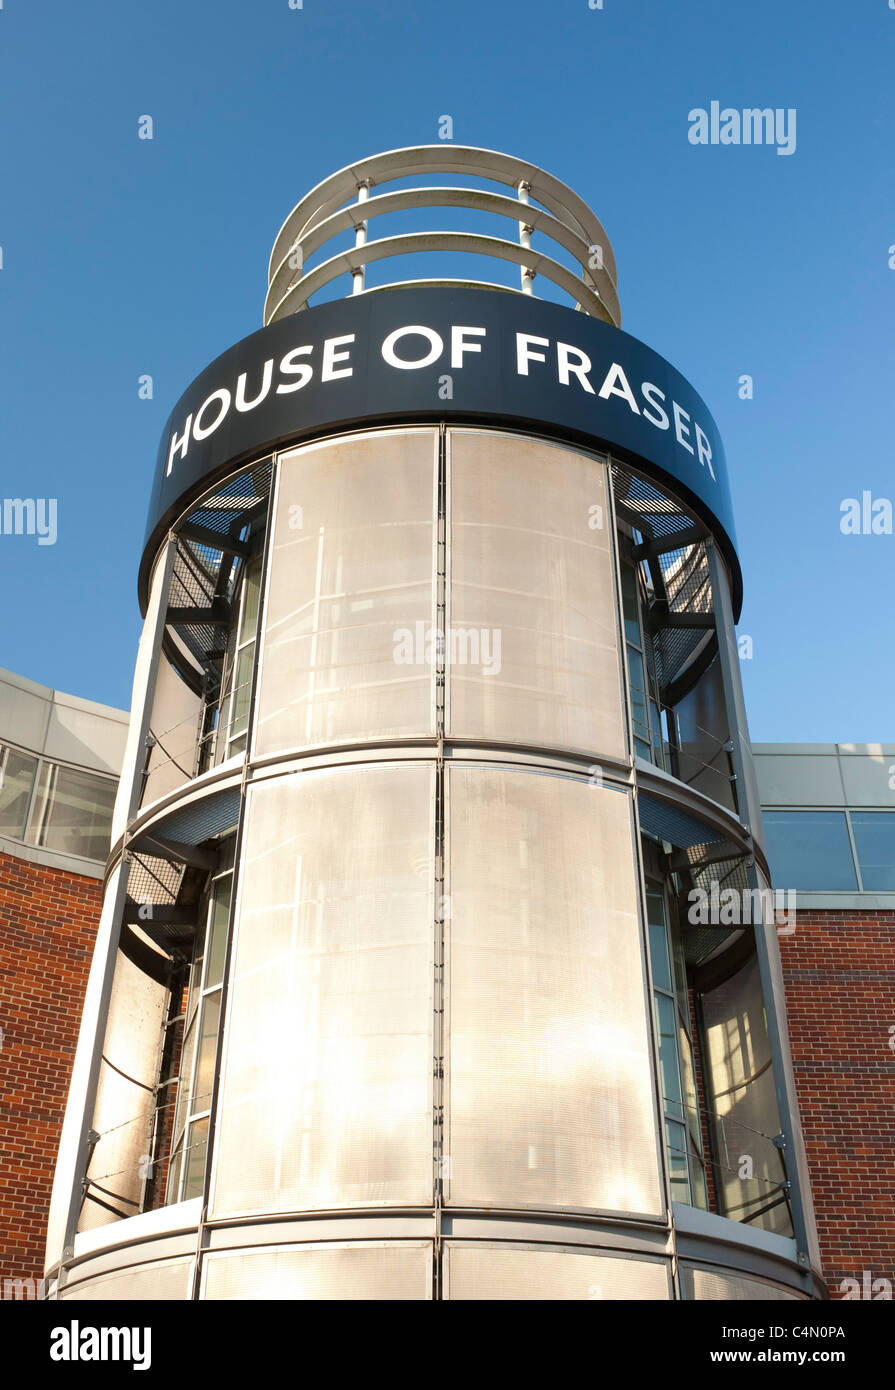 House of Fraser store, Norwich, UK - Stock Image